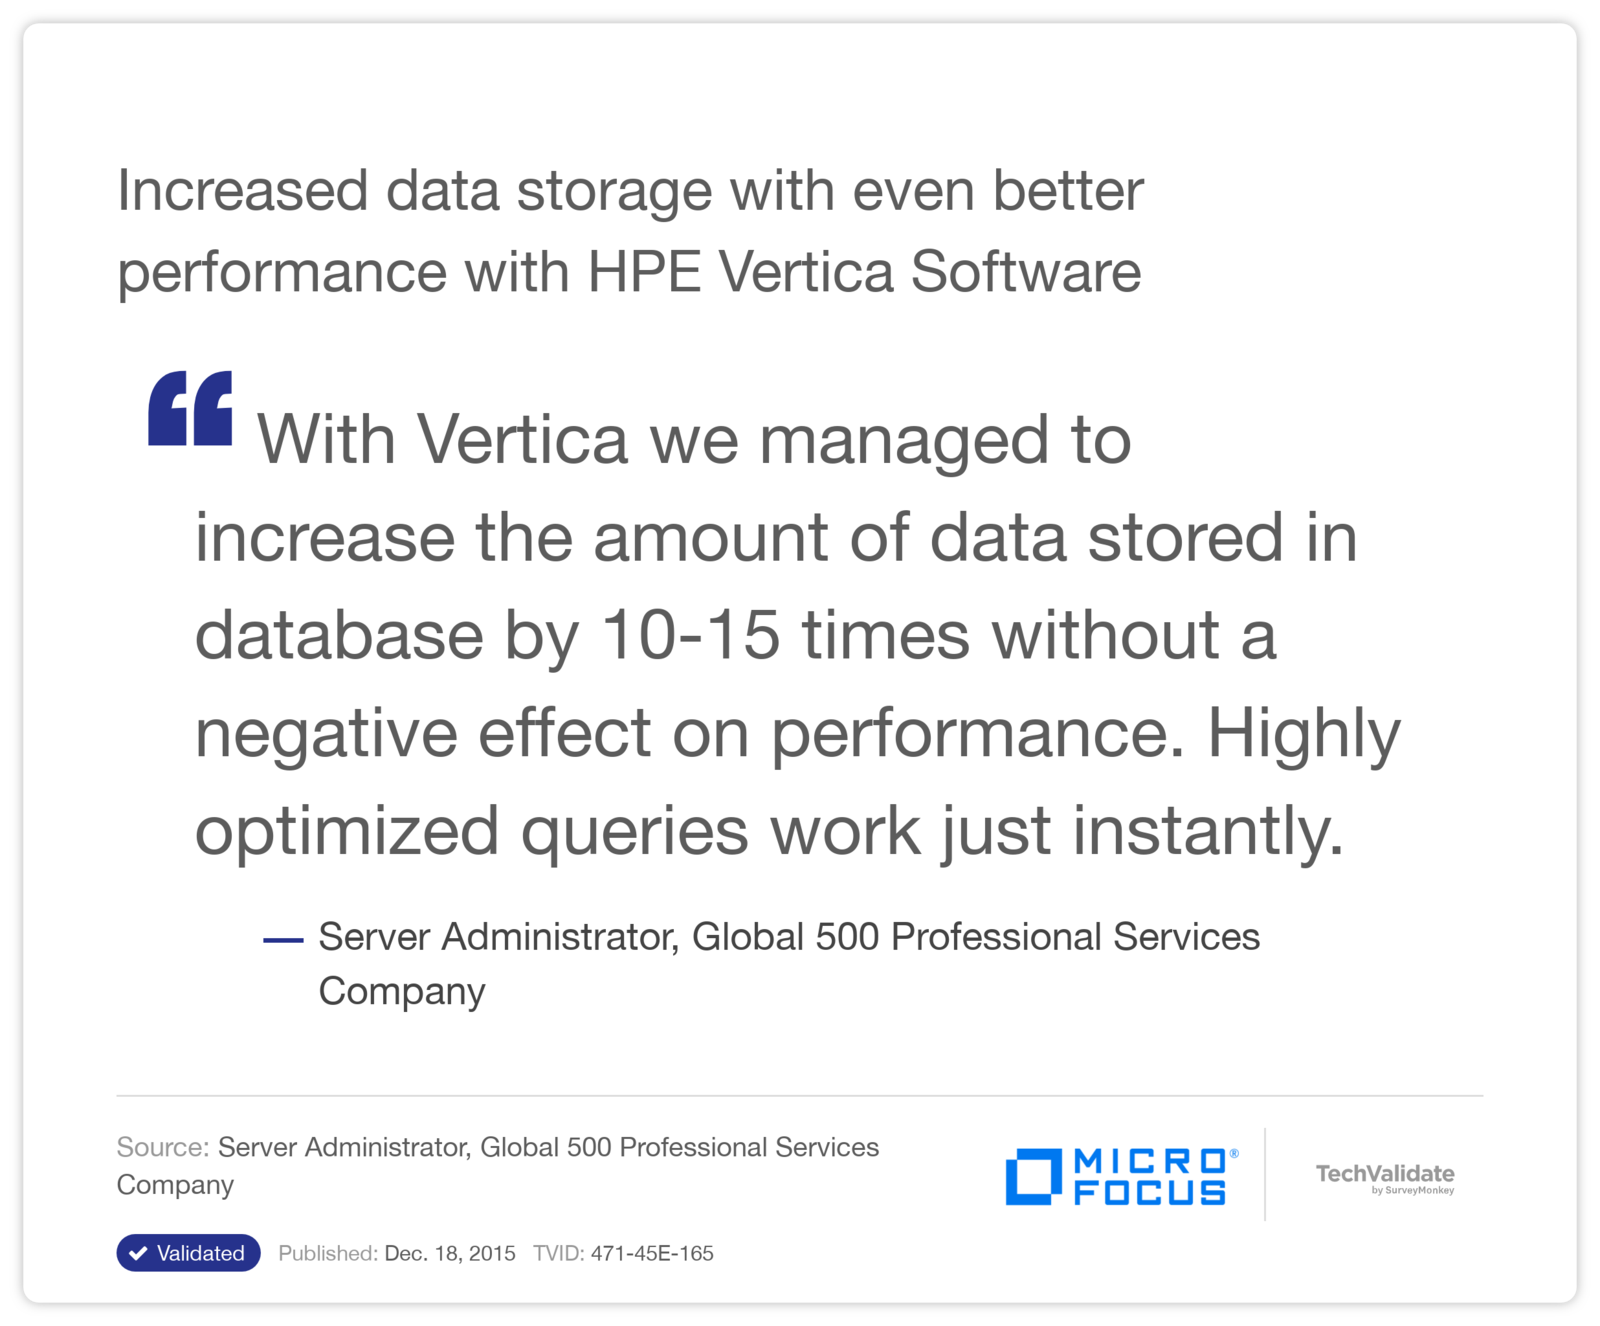 Increased data storage with even better performance with HPE Vertica Software